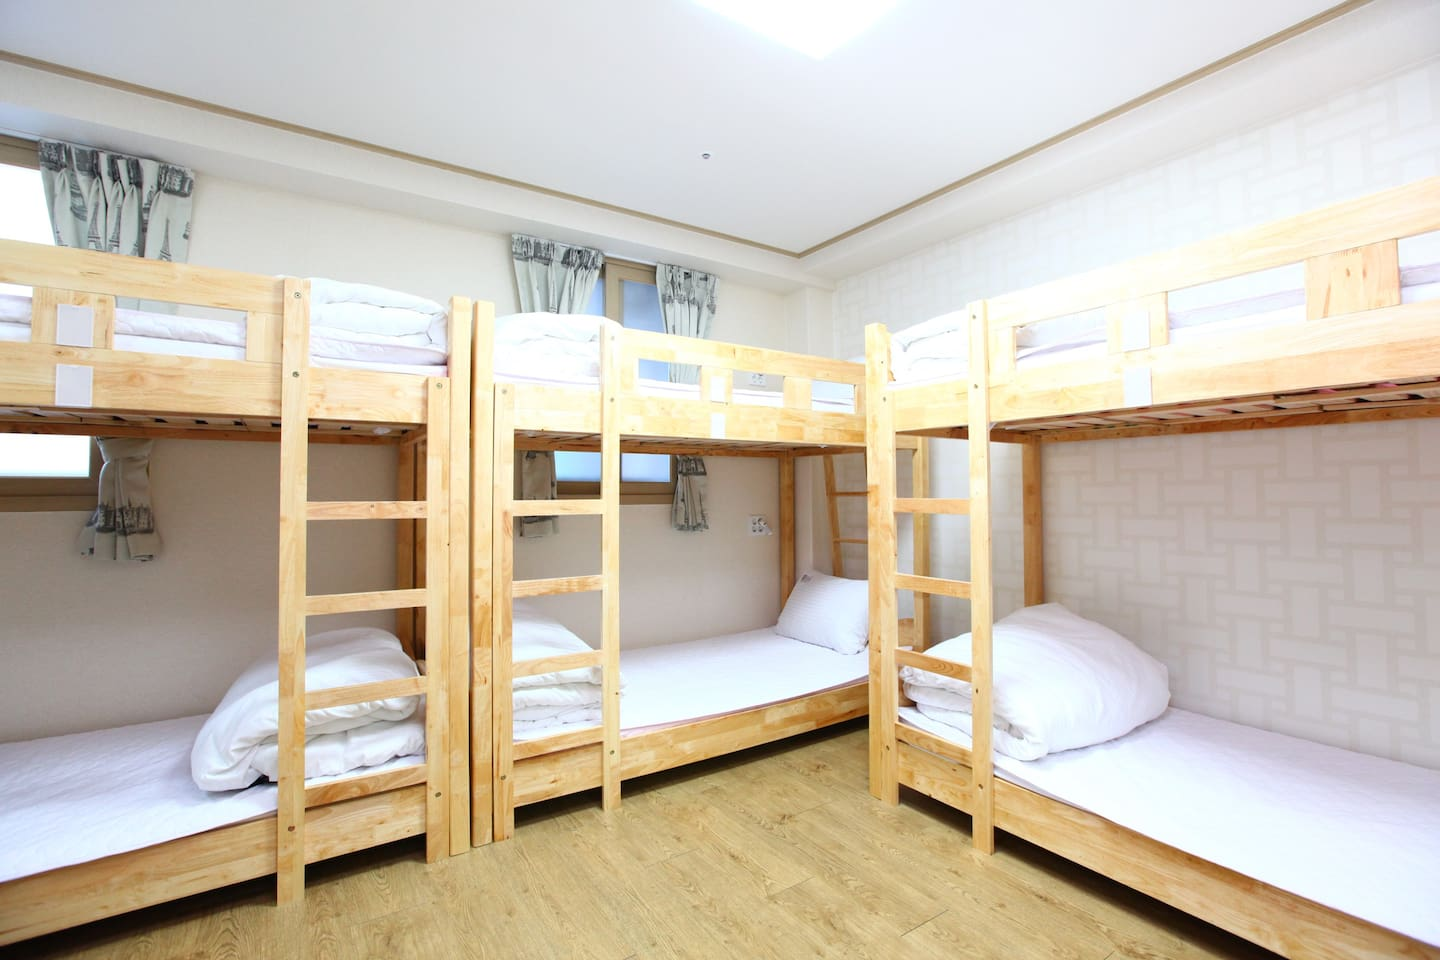 6 dormitory or family room with a private bathroom